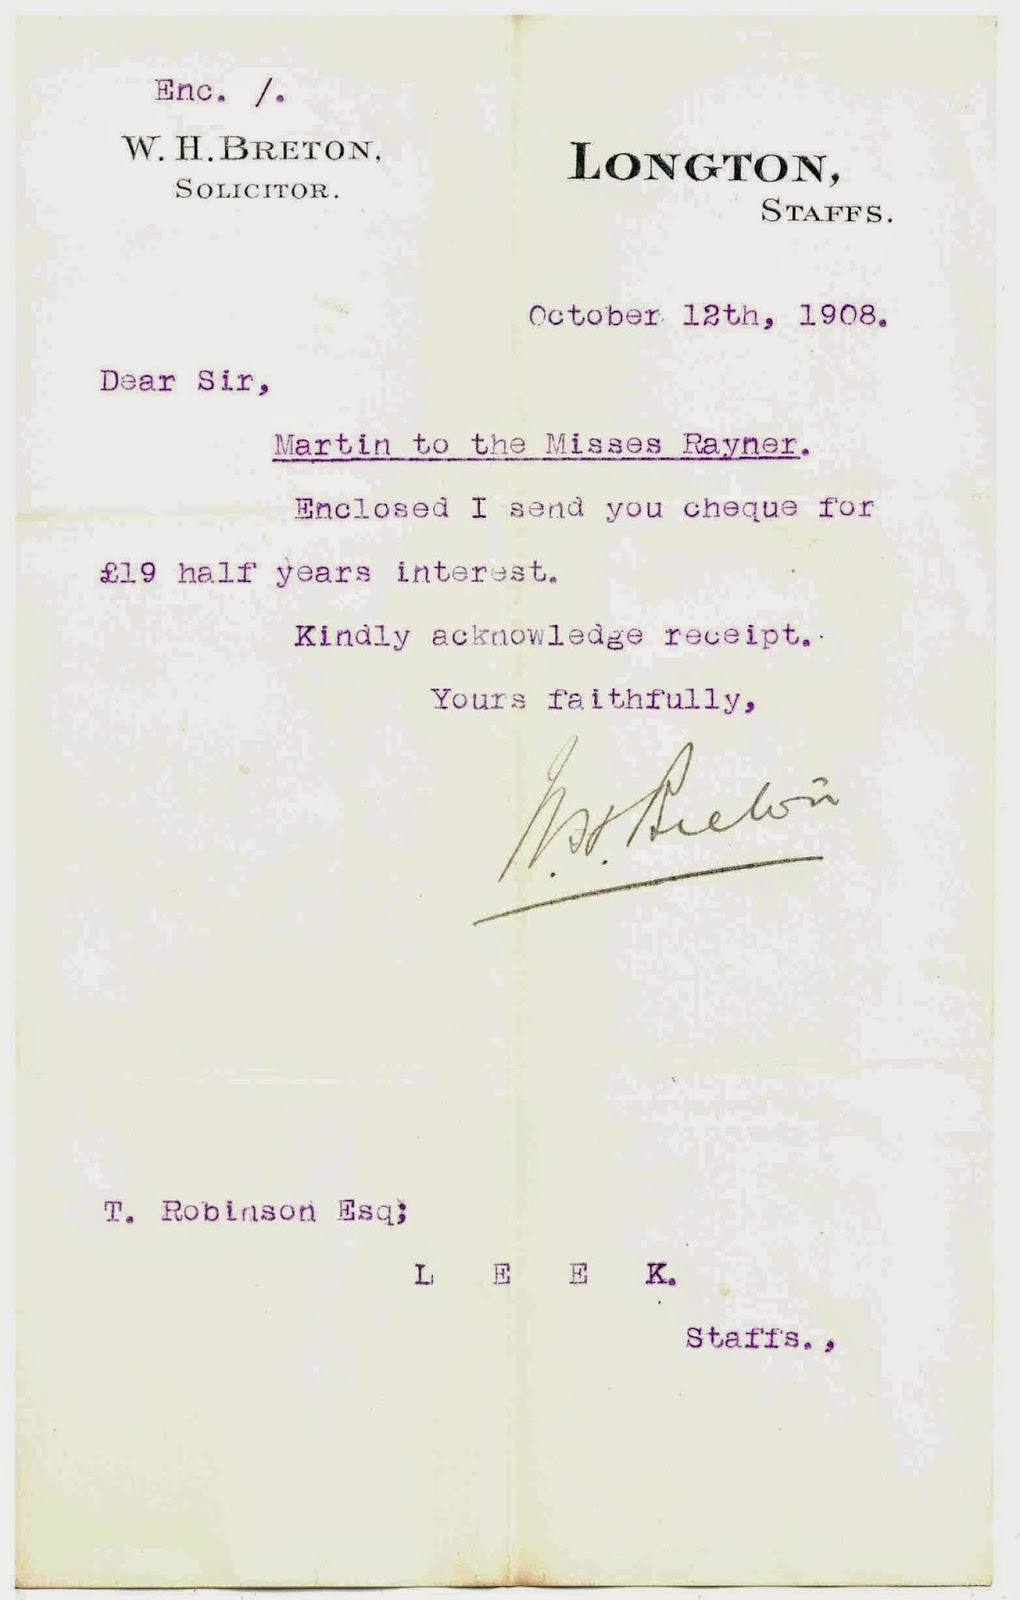 Typed Letter from W. H. Breton Solicitor, Longton, Staffordshire - Martin to Misses Rayner, 1908